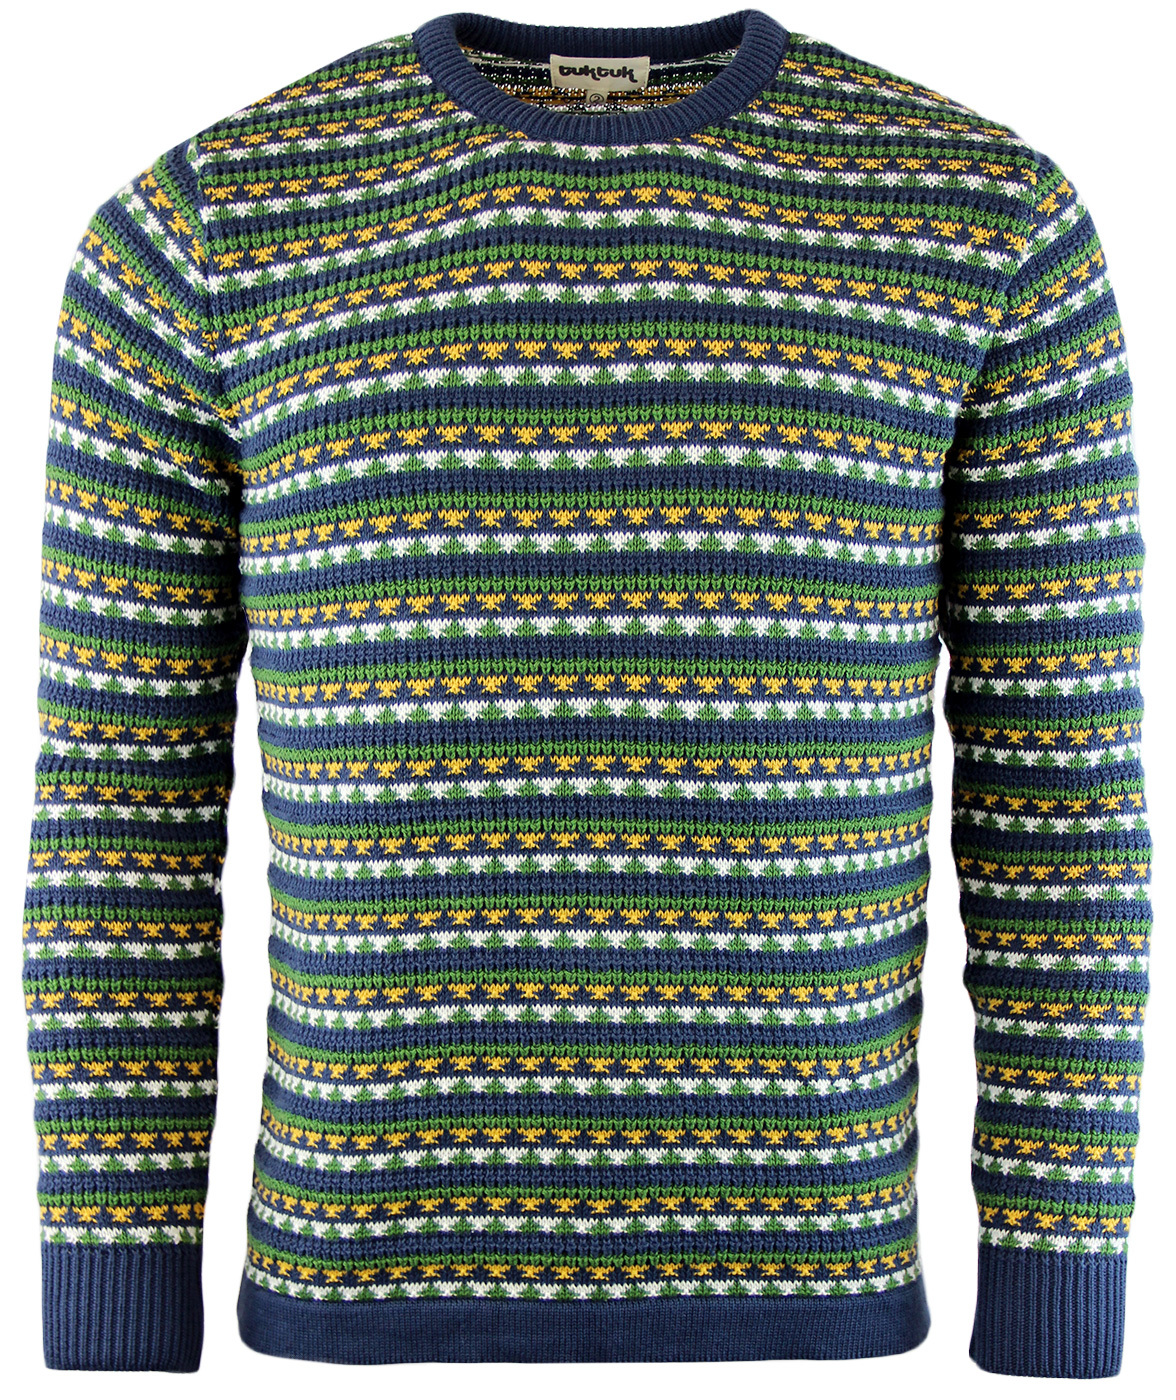 Parsons TUKTUK Retro Indie 70s Mens Knitted Jumper